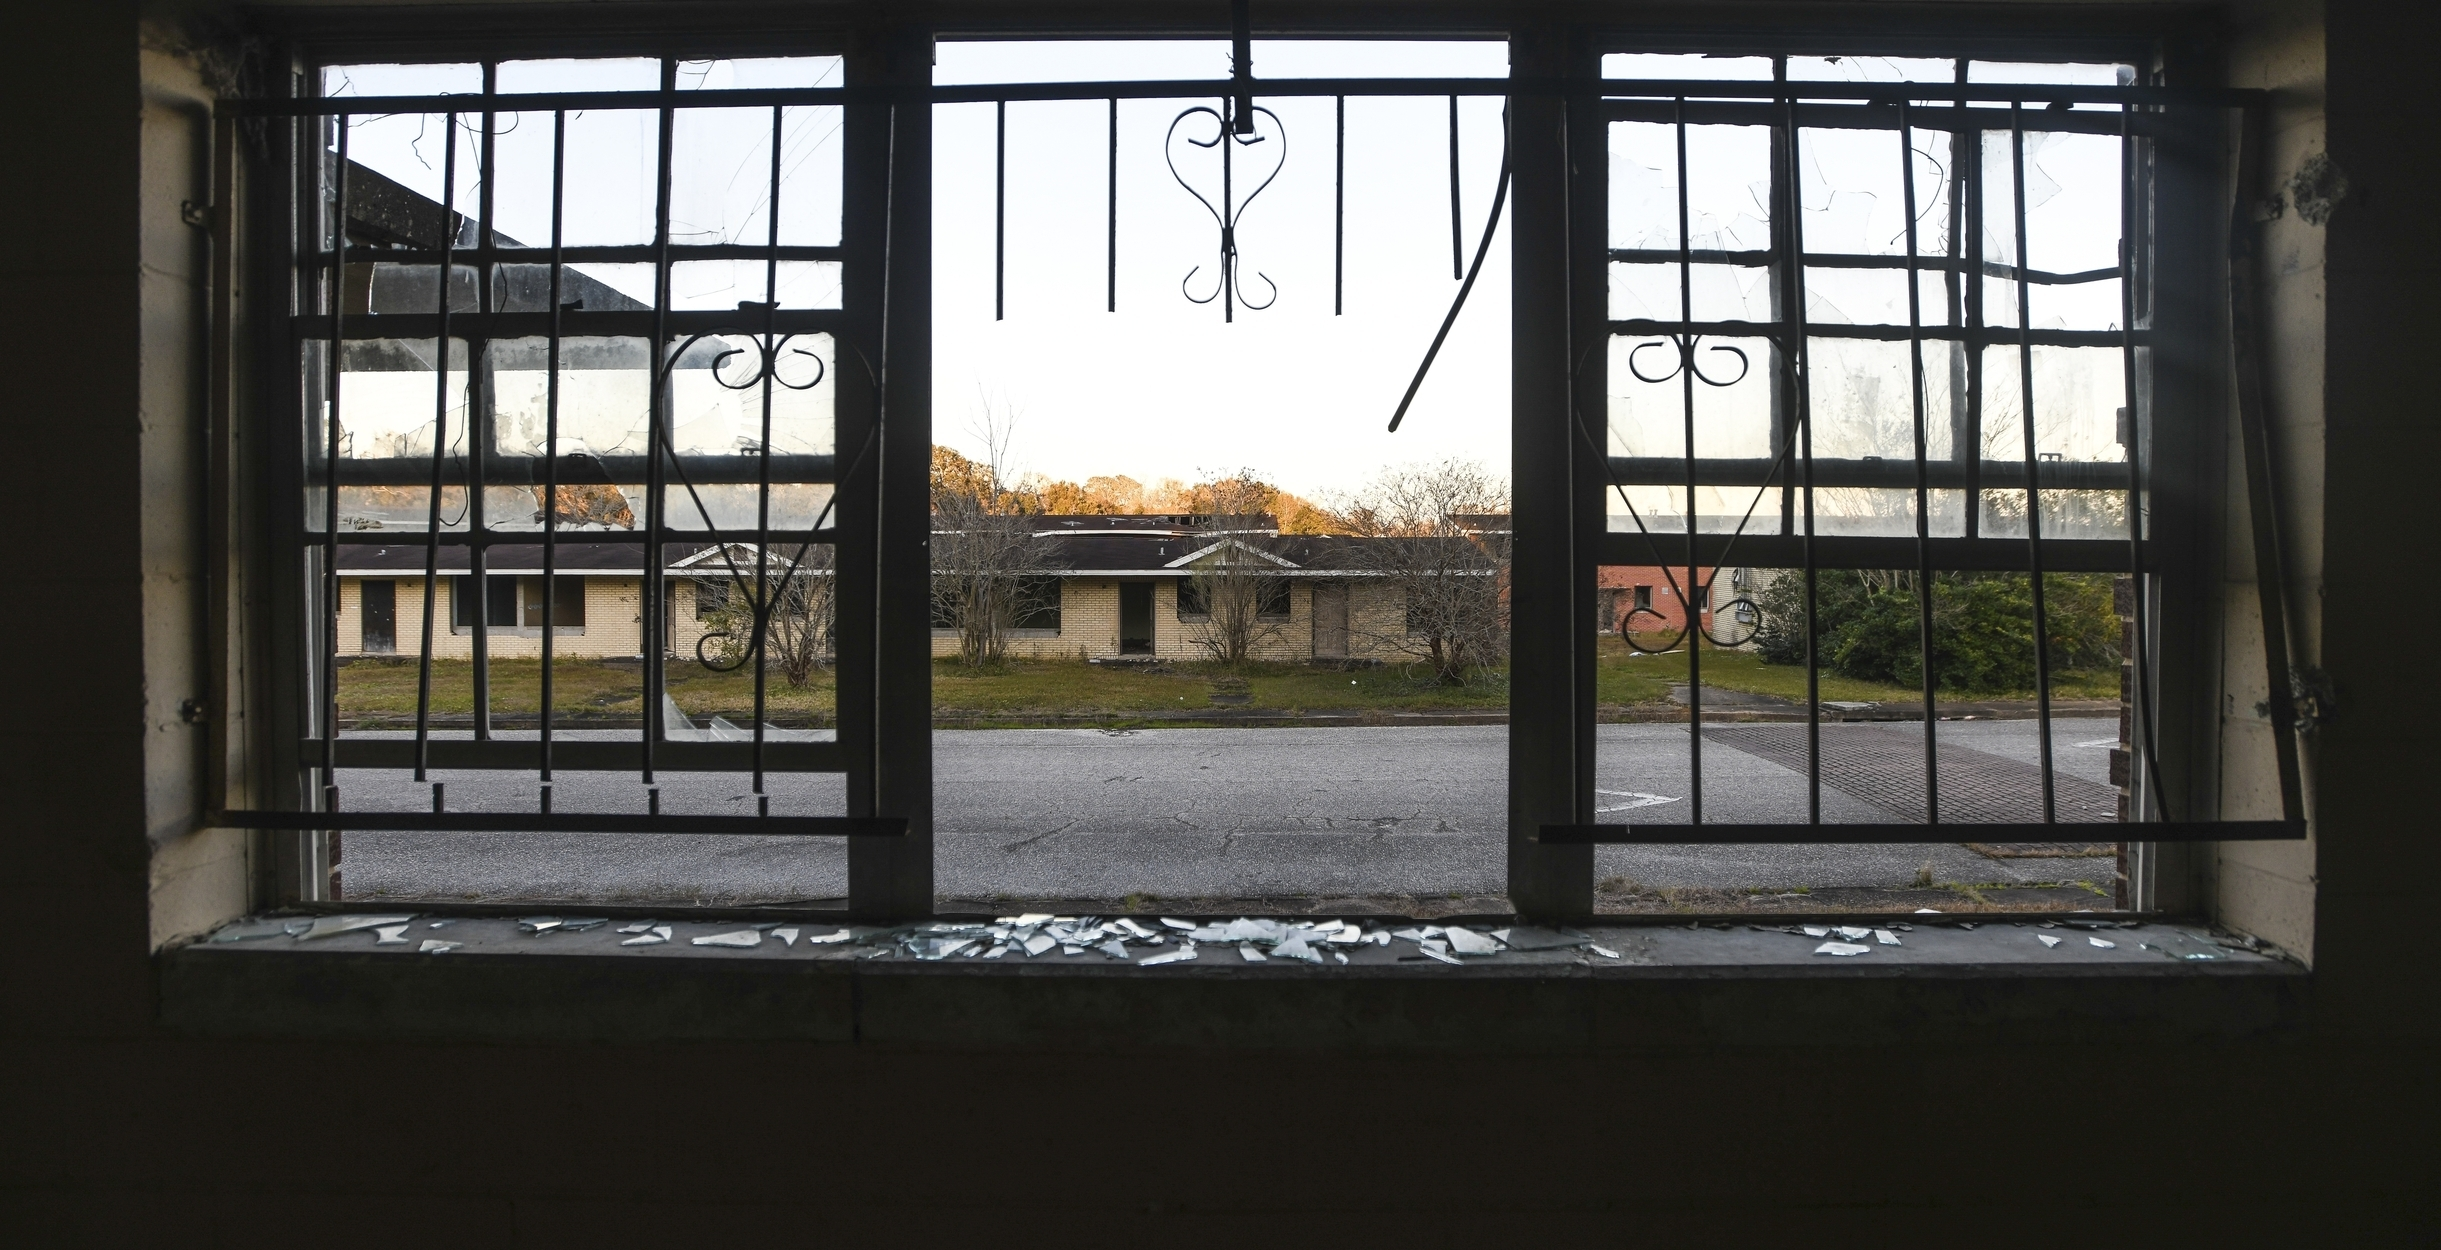 The Josephine Allen housing project stands abandoned in what's known as the Africatown's Happy Hills community in Mobile, Ala., on Tuesday, Jan. 29, 2019. (AP Photo/Julie Bennett)